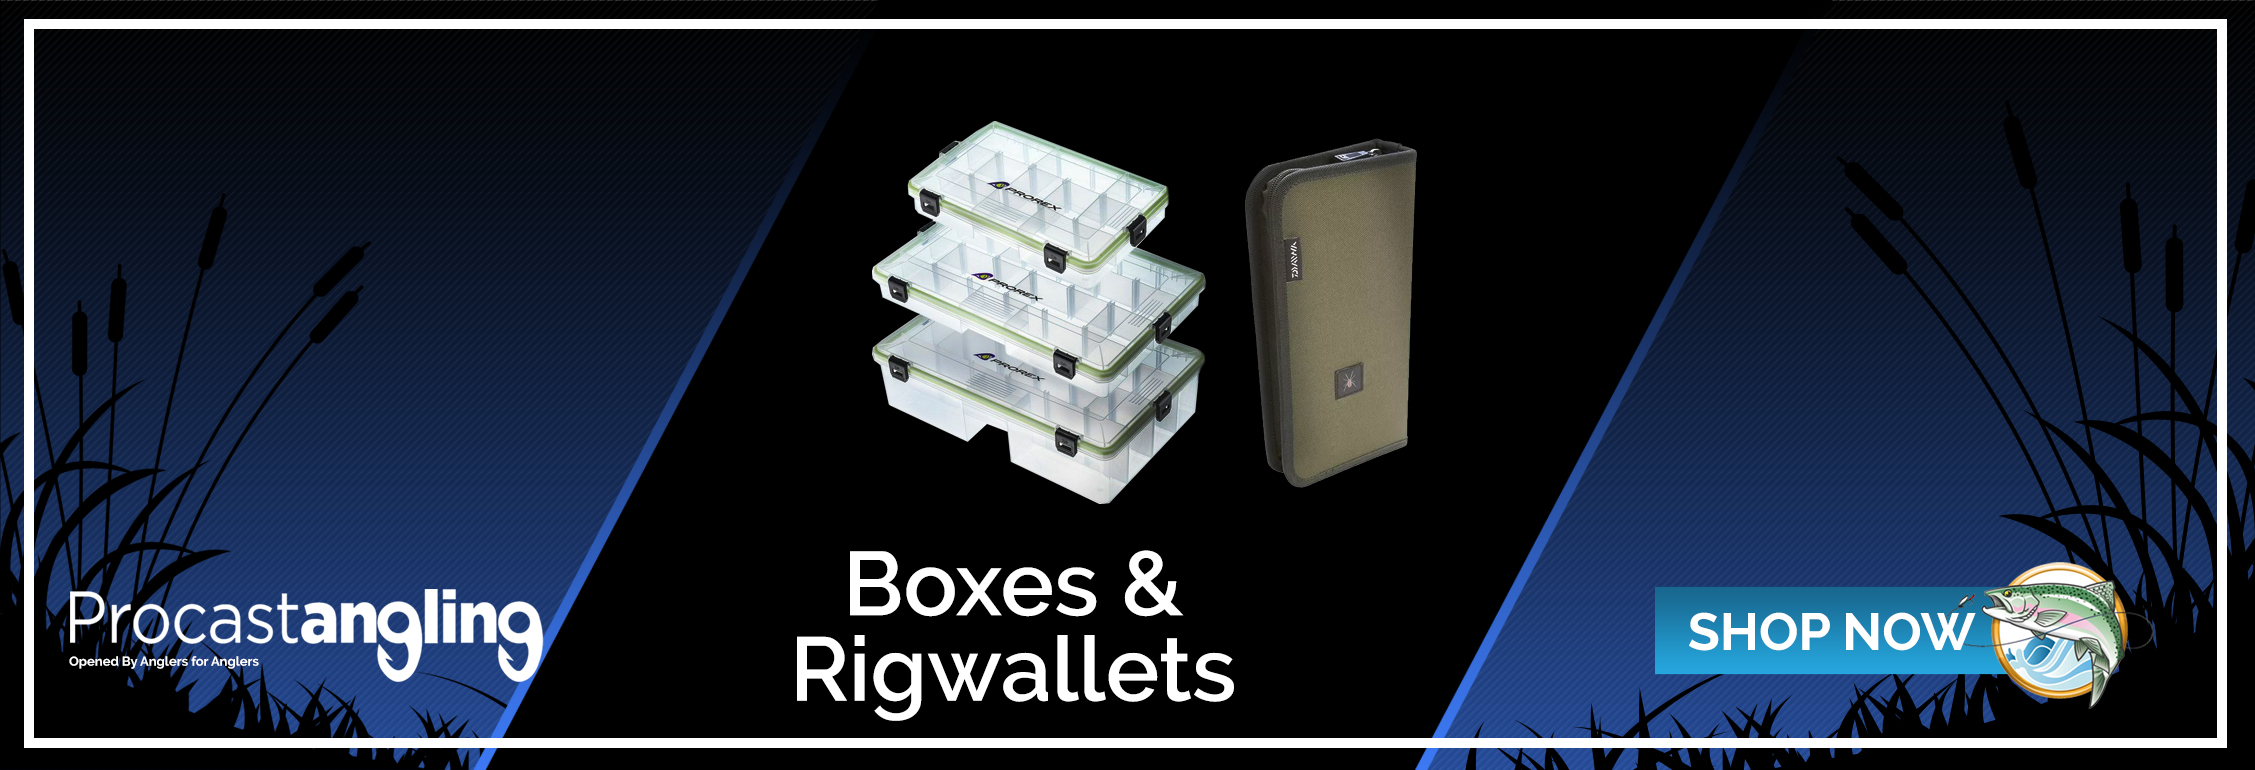 BOXES & RIGWALLETS